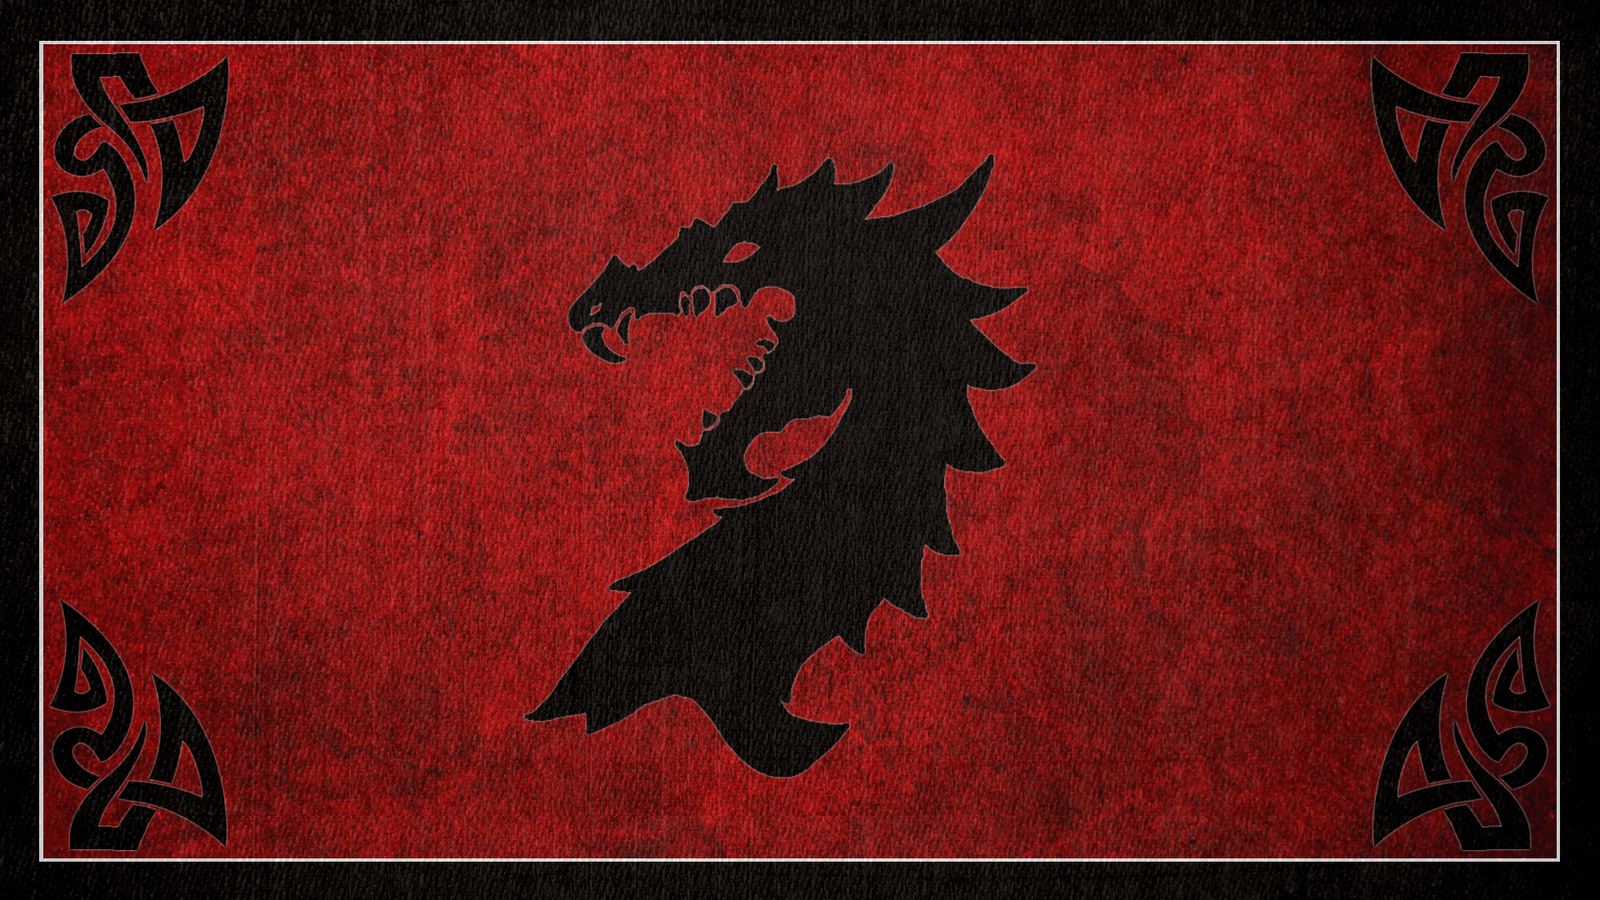 the_elder_scrolls__flag_of_the_ebonheart_pact_by_okiir-d6gfu42.png